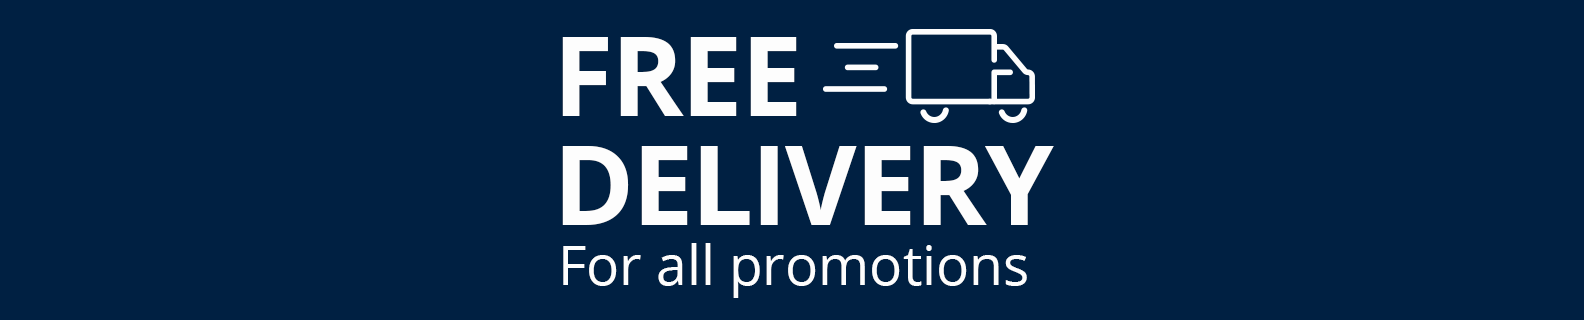 Free delivery promotions imlab